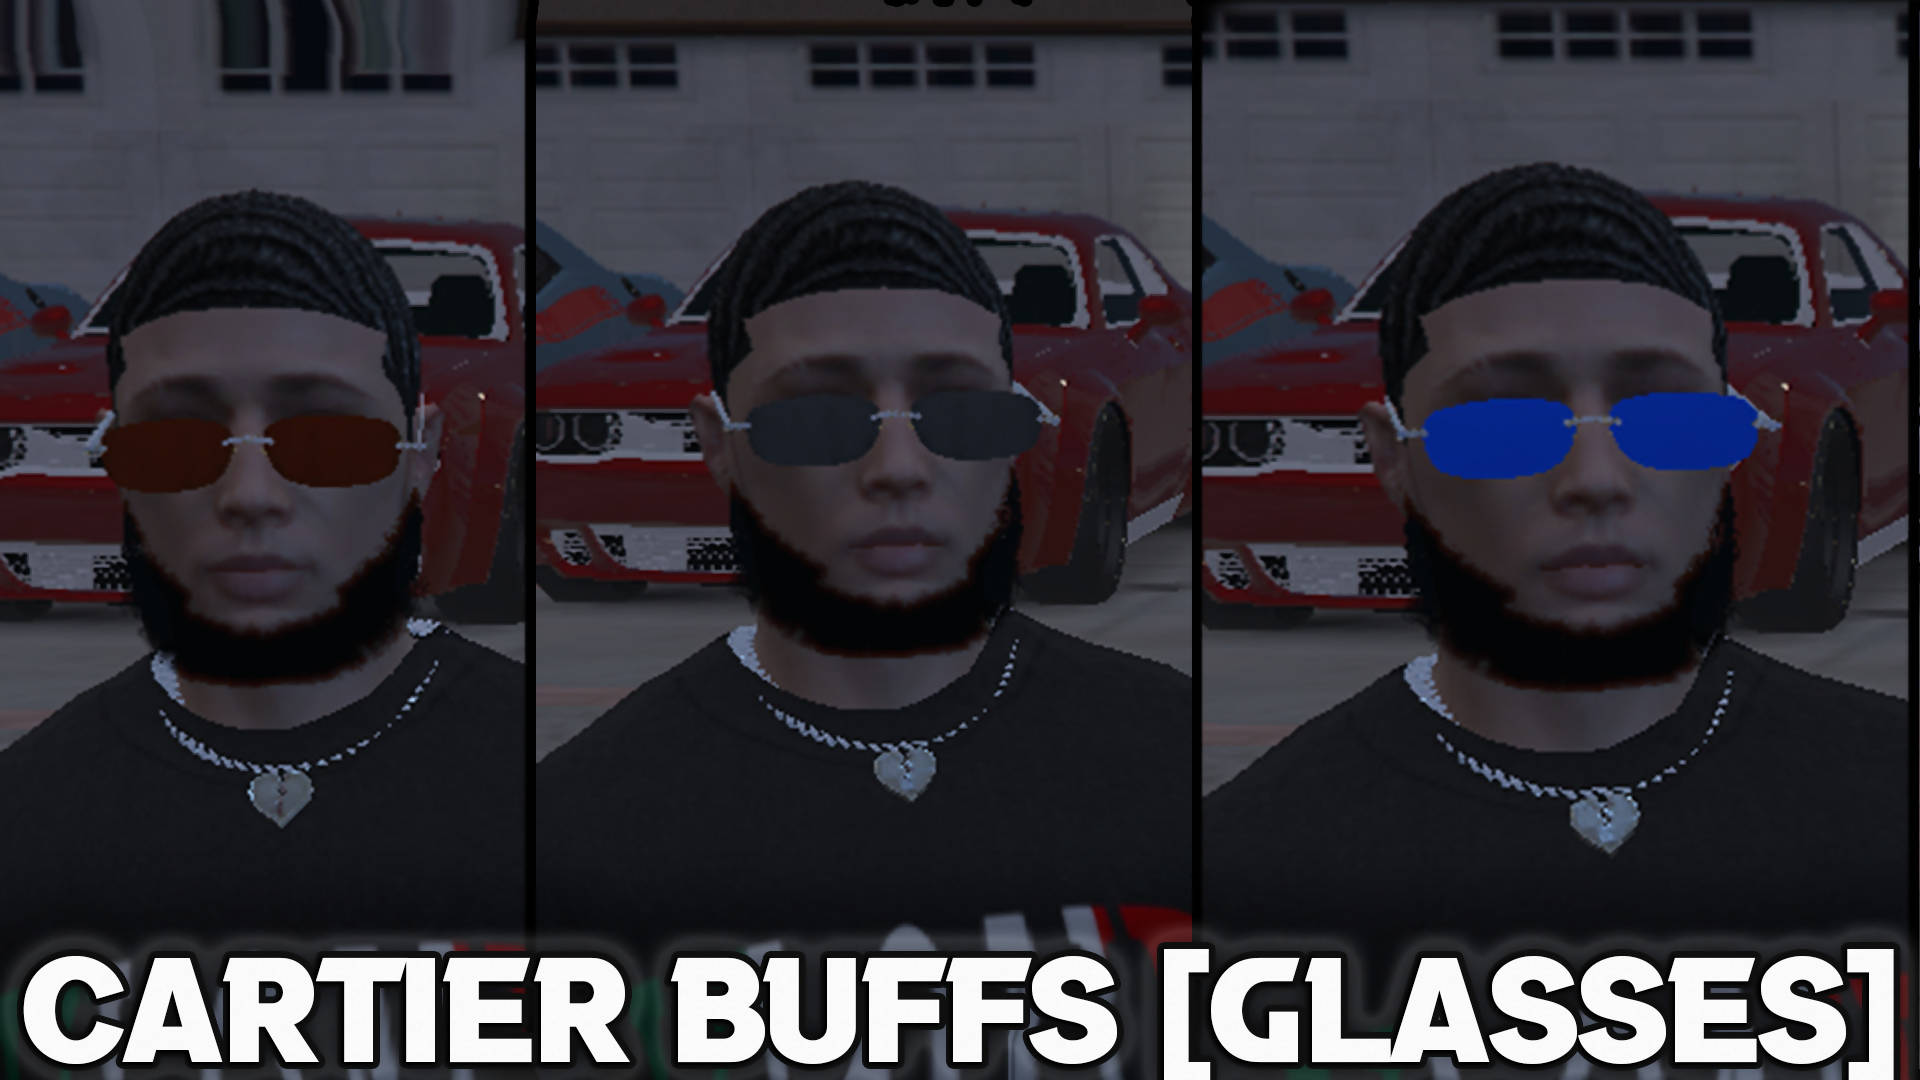 Cartier Buffs [Glasses]